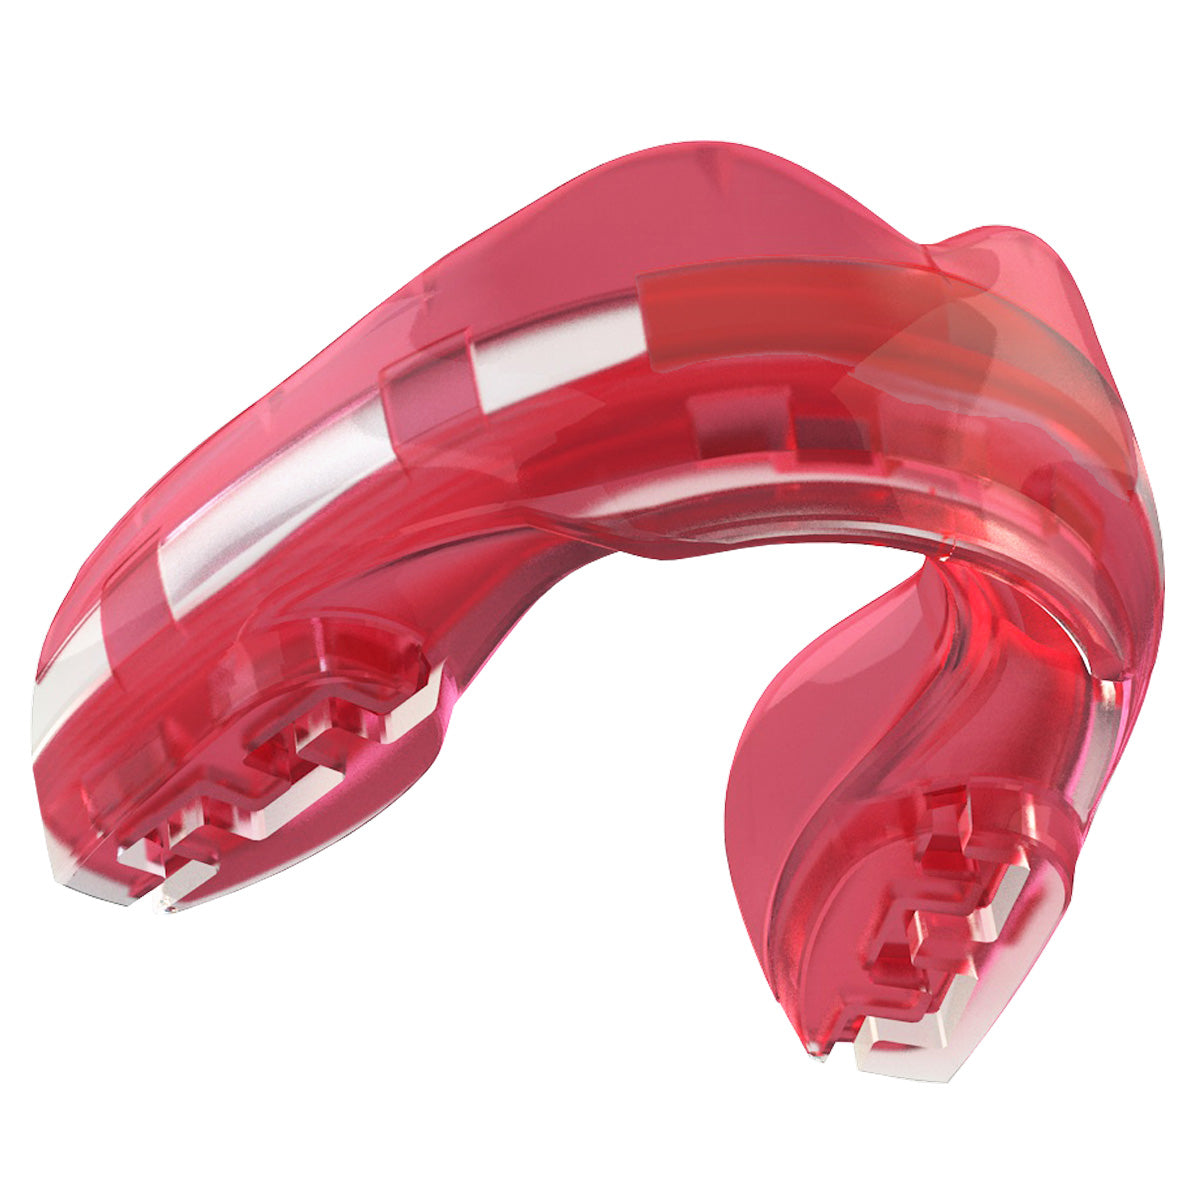 SAFEJAWZ® Ortho Series Self-Fit Mouthguard for Braces - Ice Pink - SAFEJAWZ gum shield